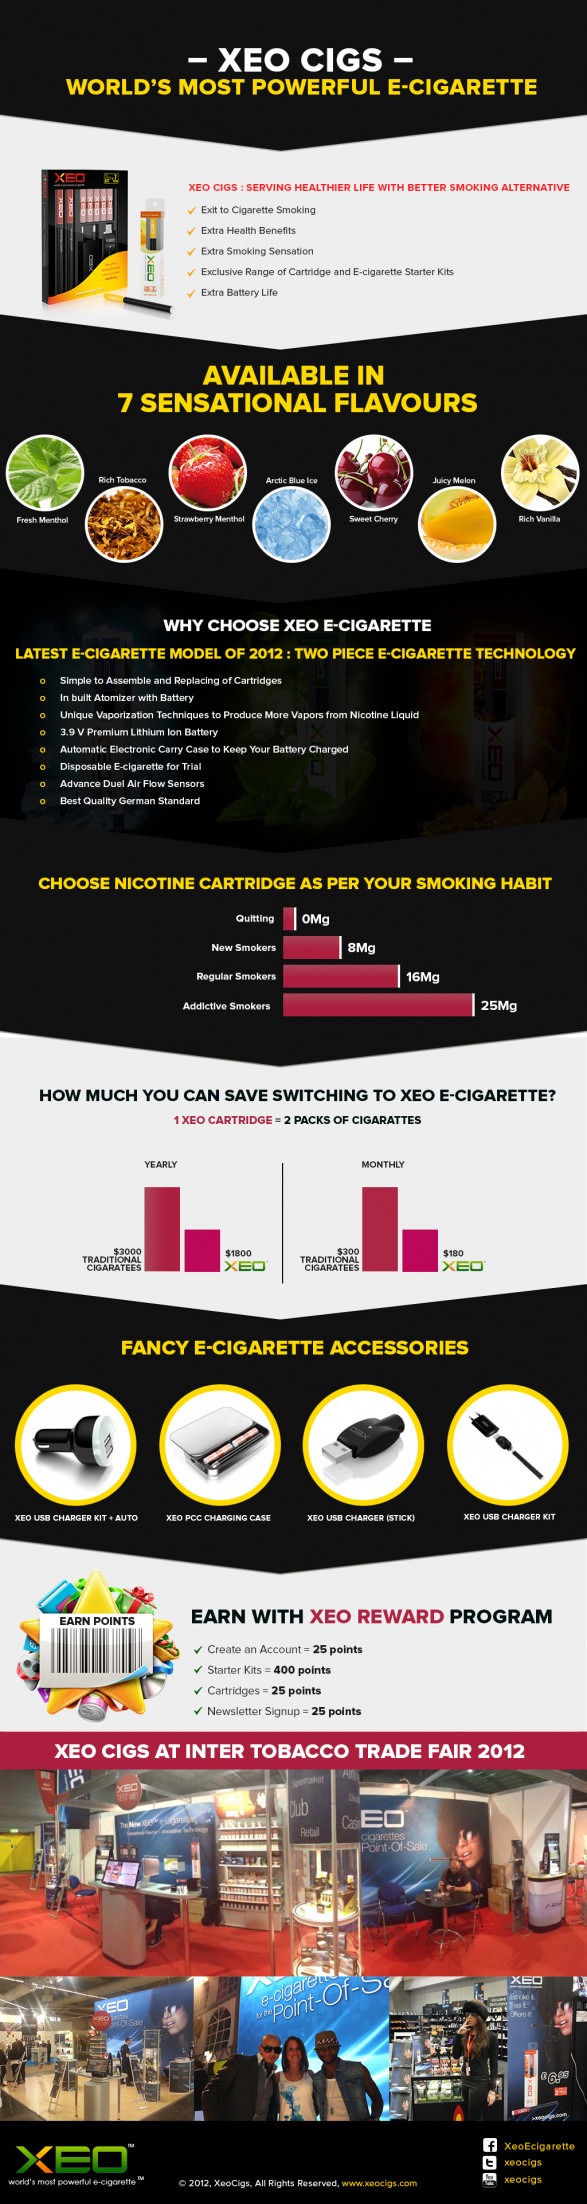 E-cigarette : Healthier Smoking Alternative